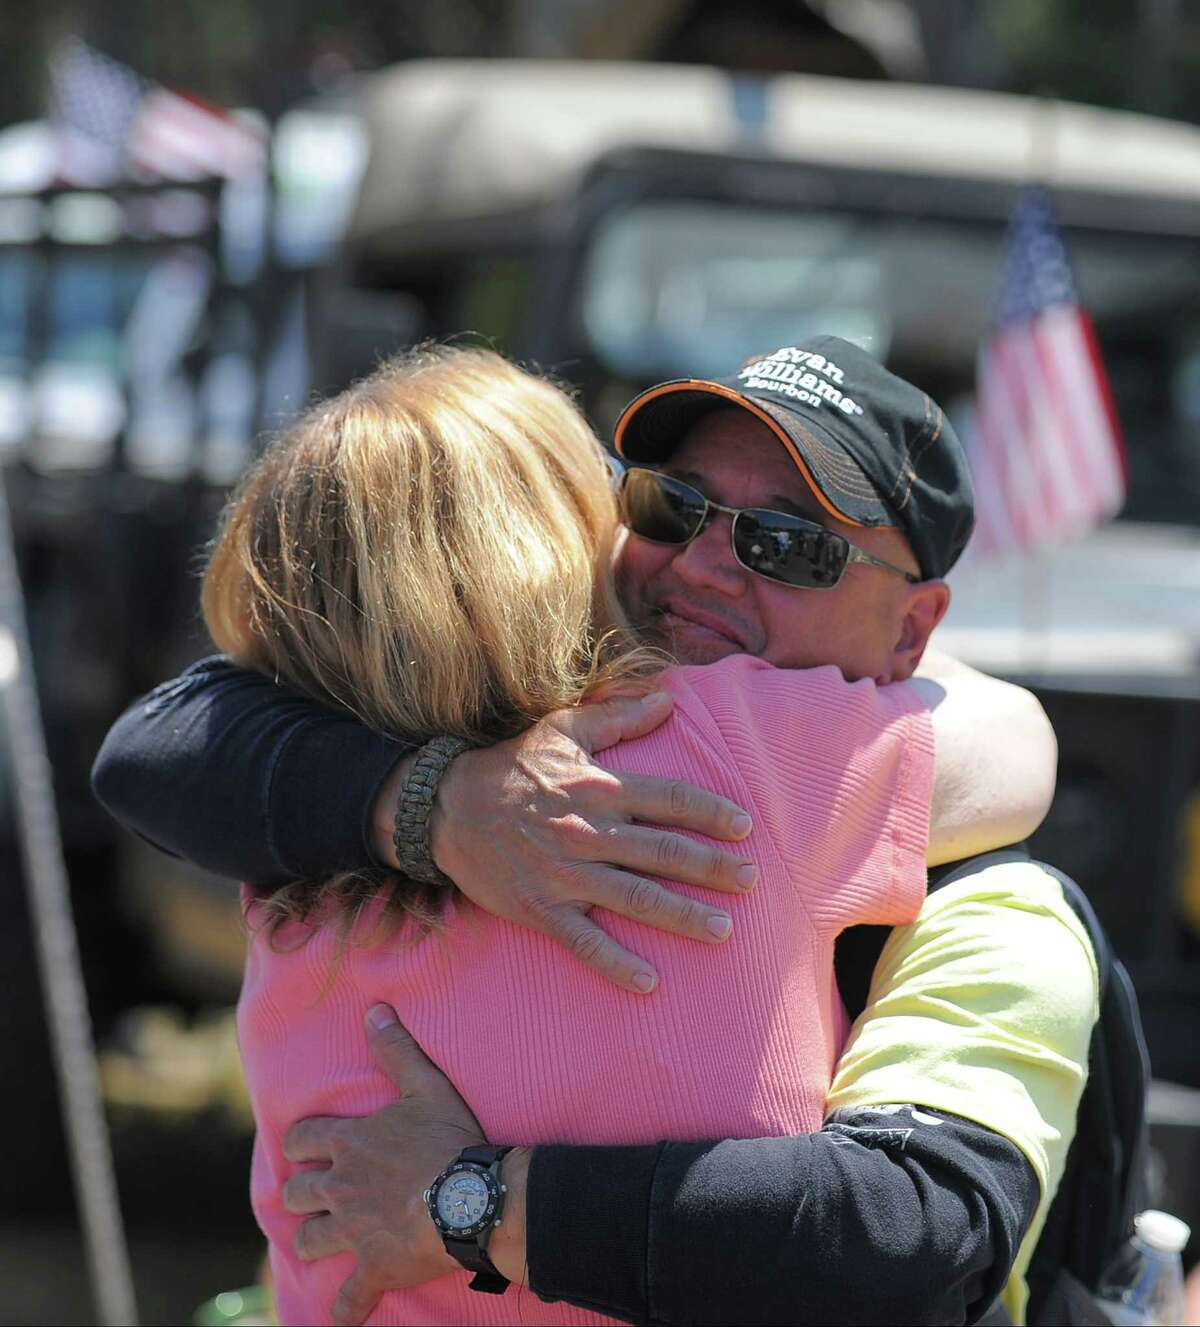 Newly retired, after 38 years of services, U.S. Army Staff Sergeant Steven Betancourt, who served in combat and was wounded in the Irag war, gets a hug from Lisa Ryan of Stamford during the Hooks for Heroes Charity Fishing Tournament at the Halloween Yacht Club in Stamford, Conn. on Saturday, June 25, 2016. The event brought together area Veterans and several injured Vets from the Walter Reed Army Hospital for a day of fishing on the Long Island Sound. Several thousands of dollars were raised to help benefit Operation Gift Cards, one of several charity's supporting combat wounded vets.